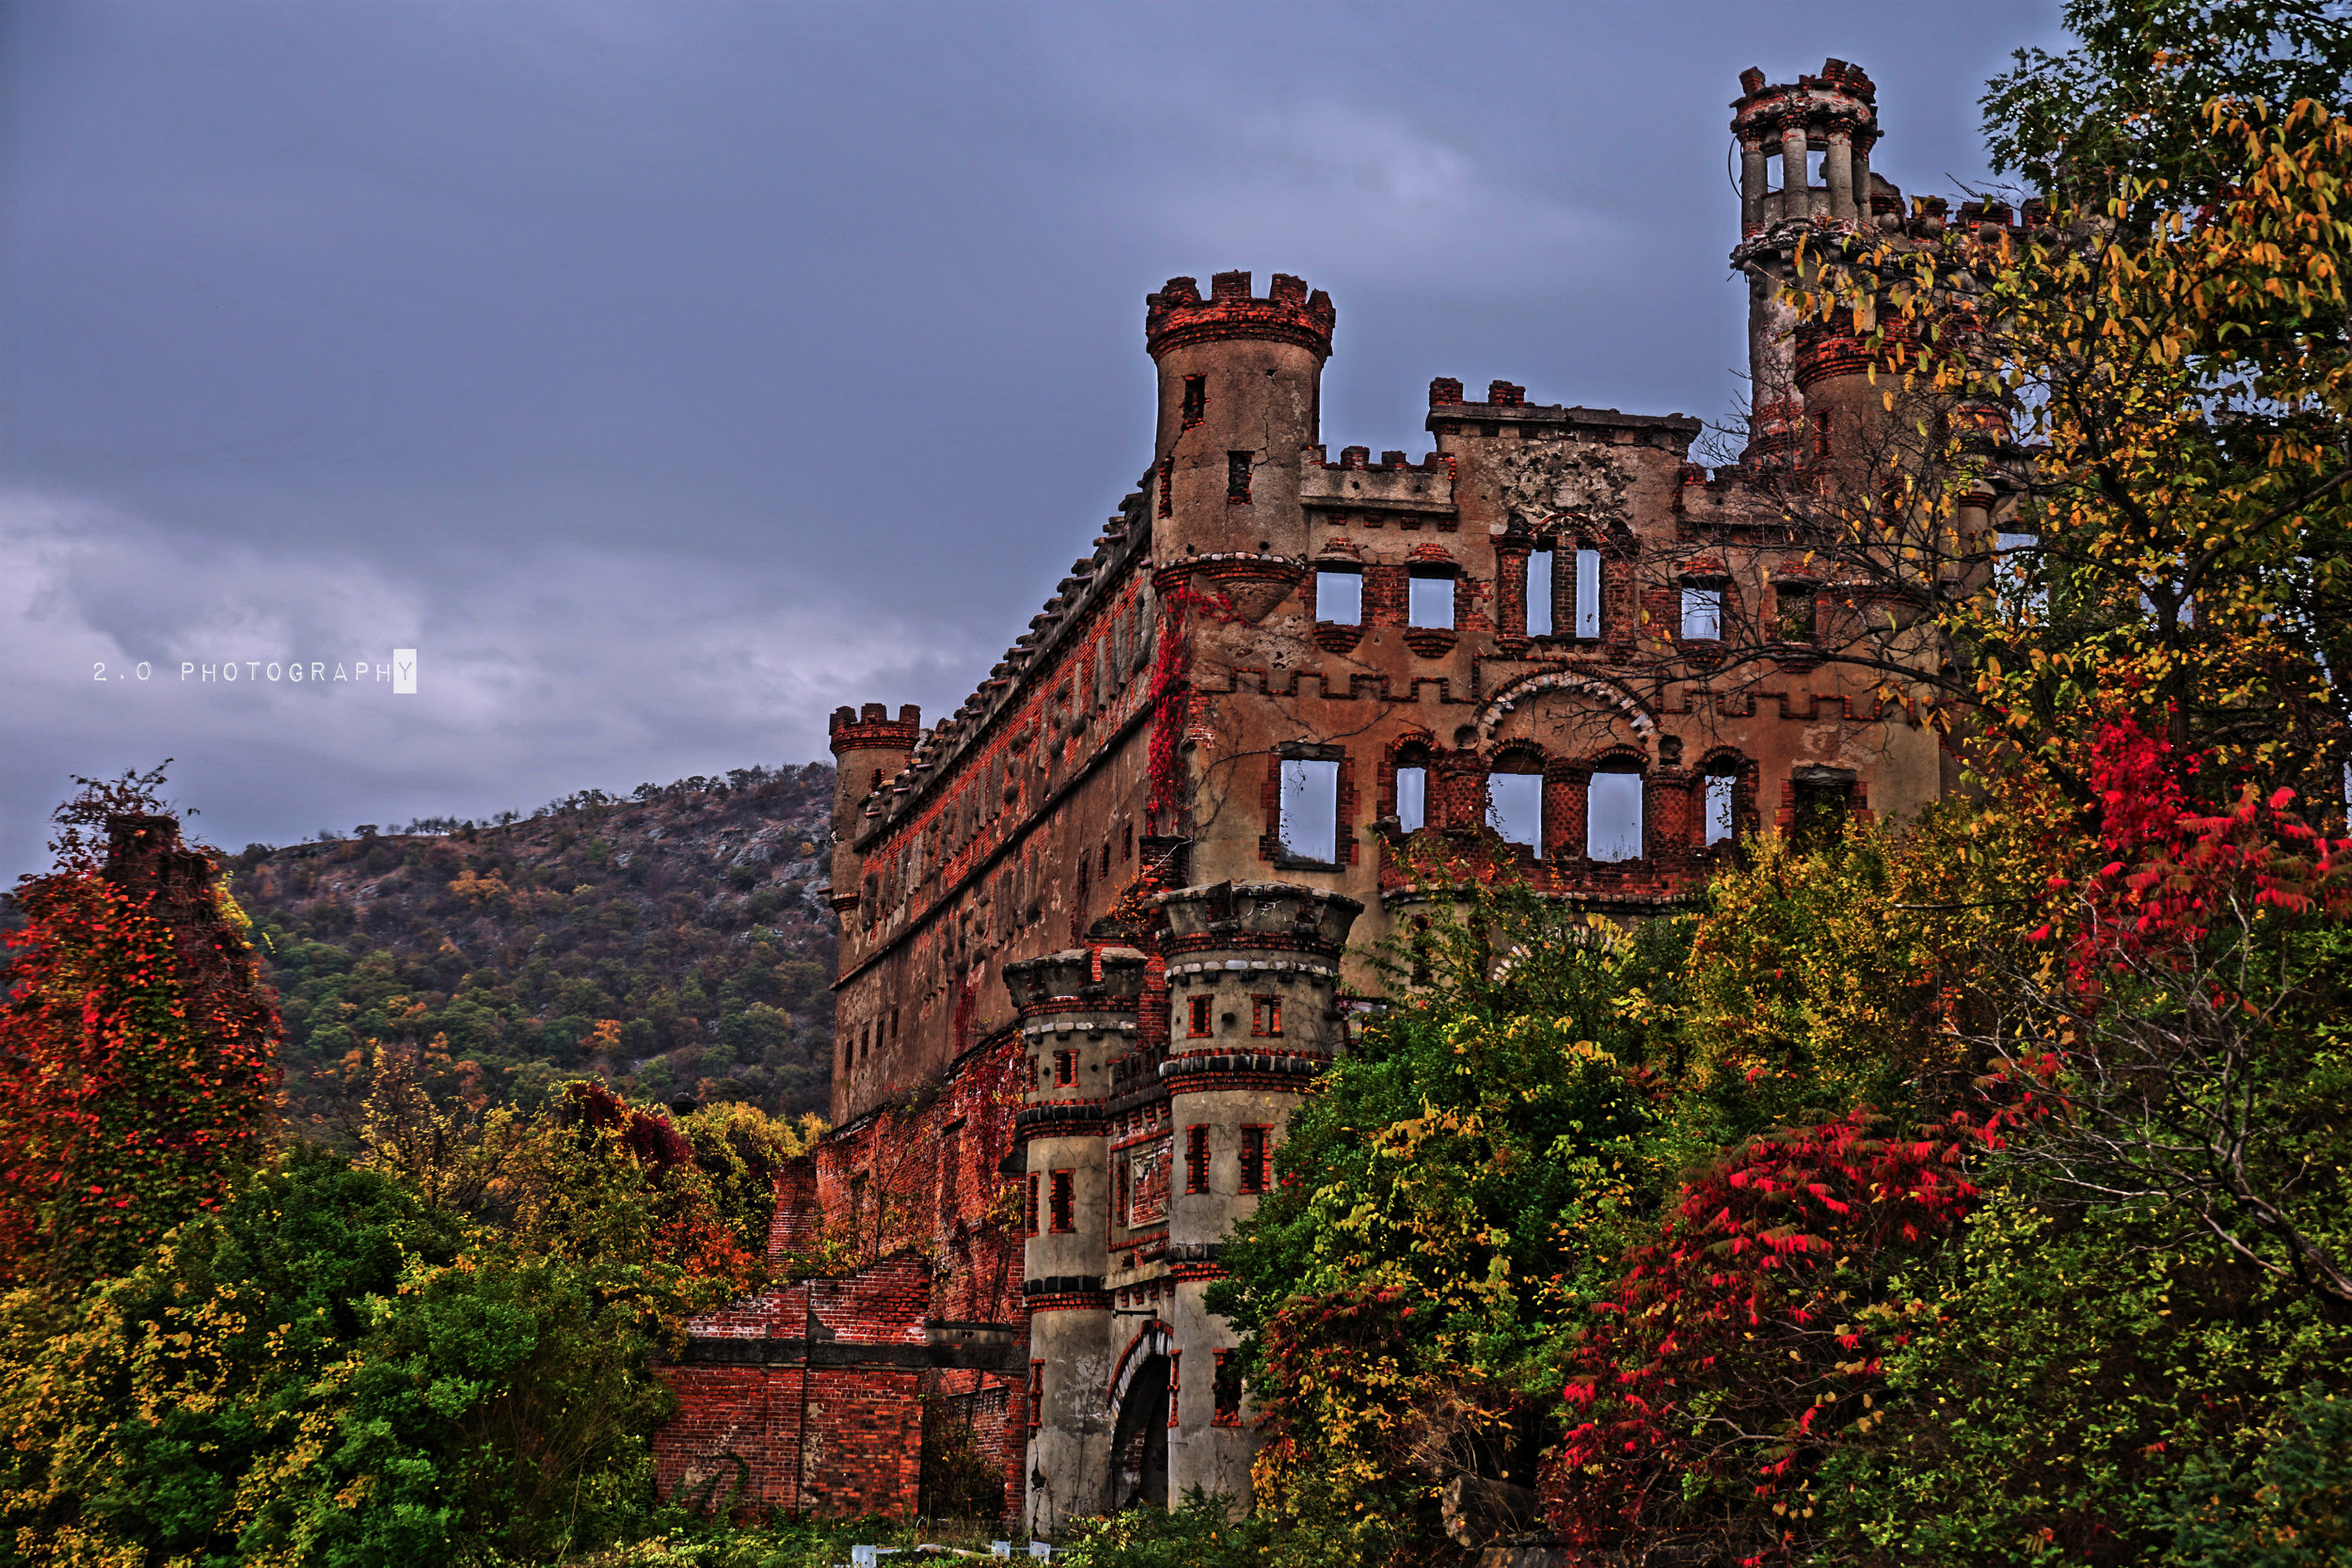 Bannerman Castle - Scottish immigrant Francis Bannerman VI owned and operated a military surplus store located in New York City. When he eventually required more space for his expanding collection, he purchased Pollepel Island (an island in the Hudson River about 50 miles north of New York City) in 1900. In 1901, he began to build a residence and a castle-like storage facility known as Bannerman Castle for his growing business. In 1920, about two years after Bannerman's death, 200 tons of shells and gunpowder exploded in an ancillary structure, destroying part of the storage complex. In 1950, the property was abandoned. Pollepel Island was eventually purchased by the state of New York in 1967.Today, Pollepel Island and its buildings are being preserved. Some parts are even being restored with the help of tours given by The Bannerman Castle Trust Inc., a non-profit dedicated to preserving Bannerman Castle.https://en.wikipedia.org/wiki/Pollepel_Island#Bannerman.27s_Castlehttp://www.bannermancastle.org/index.html